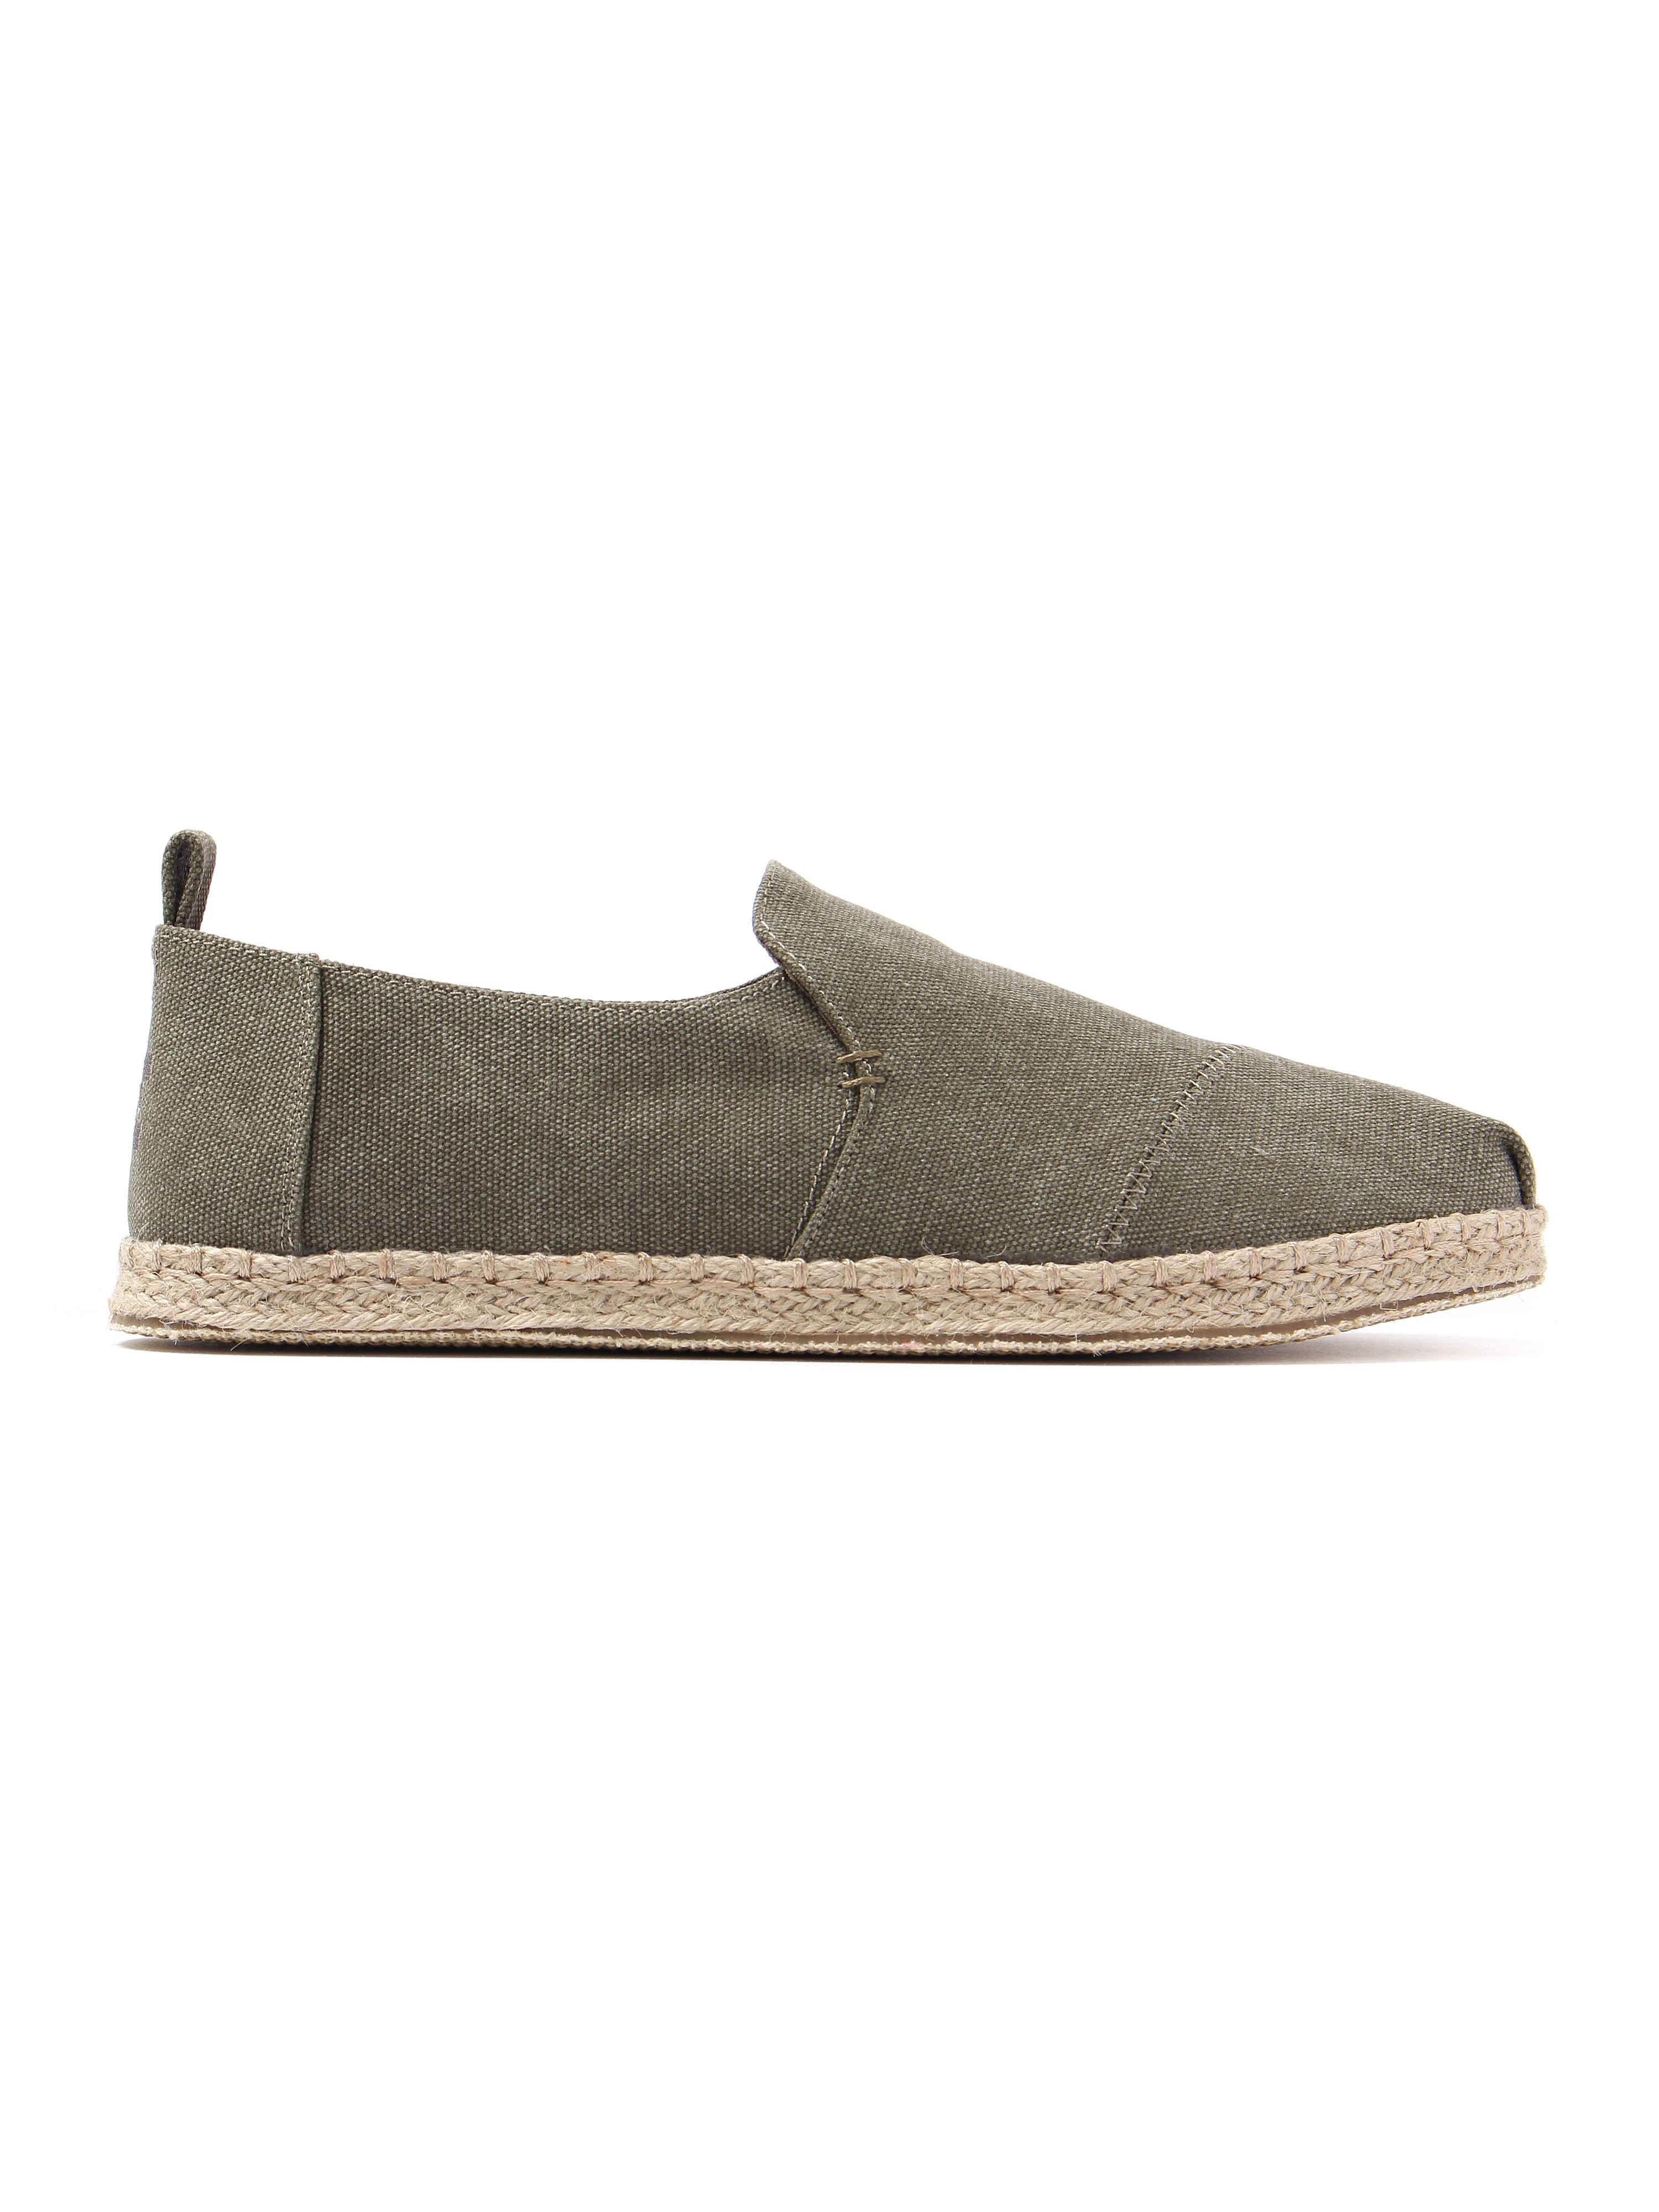 Toms Men's Deconstructed Alpargata Slub Chambray Rope Sole Espadrilles - Olive